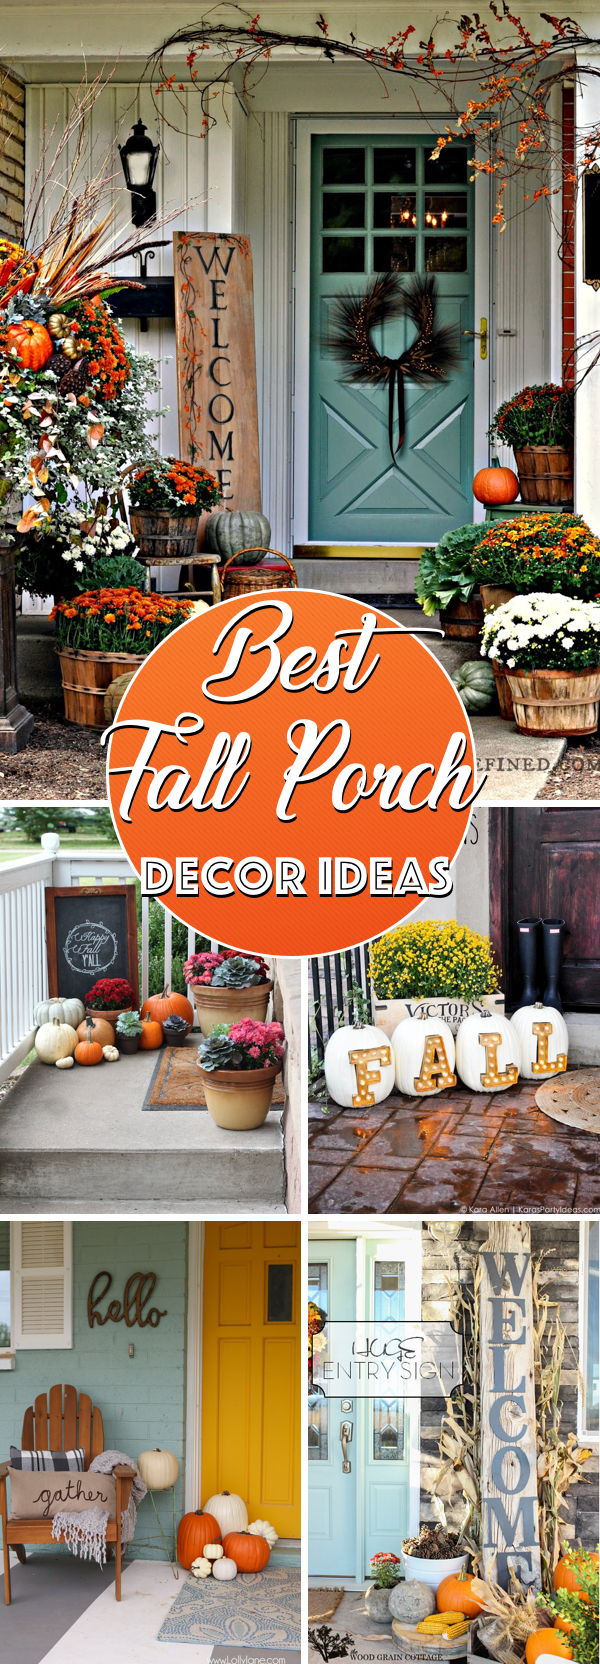 20 Fall Porch Decor Ideas Dressing up Your Space For the Autumn Season